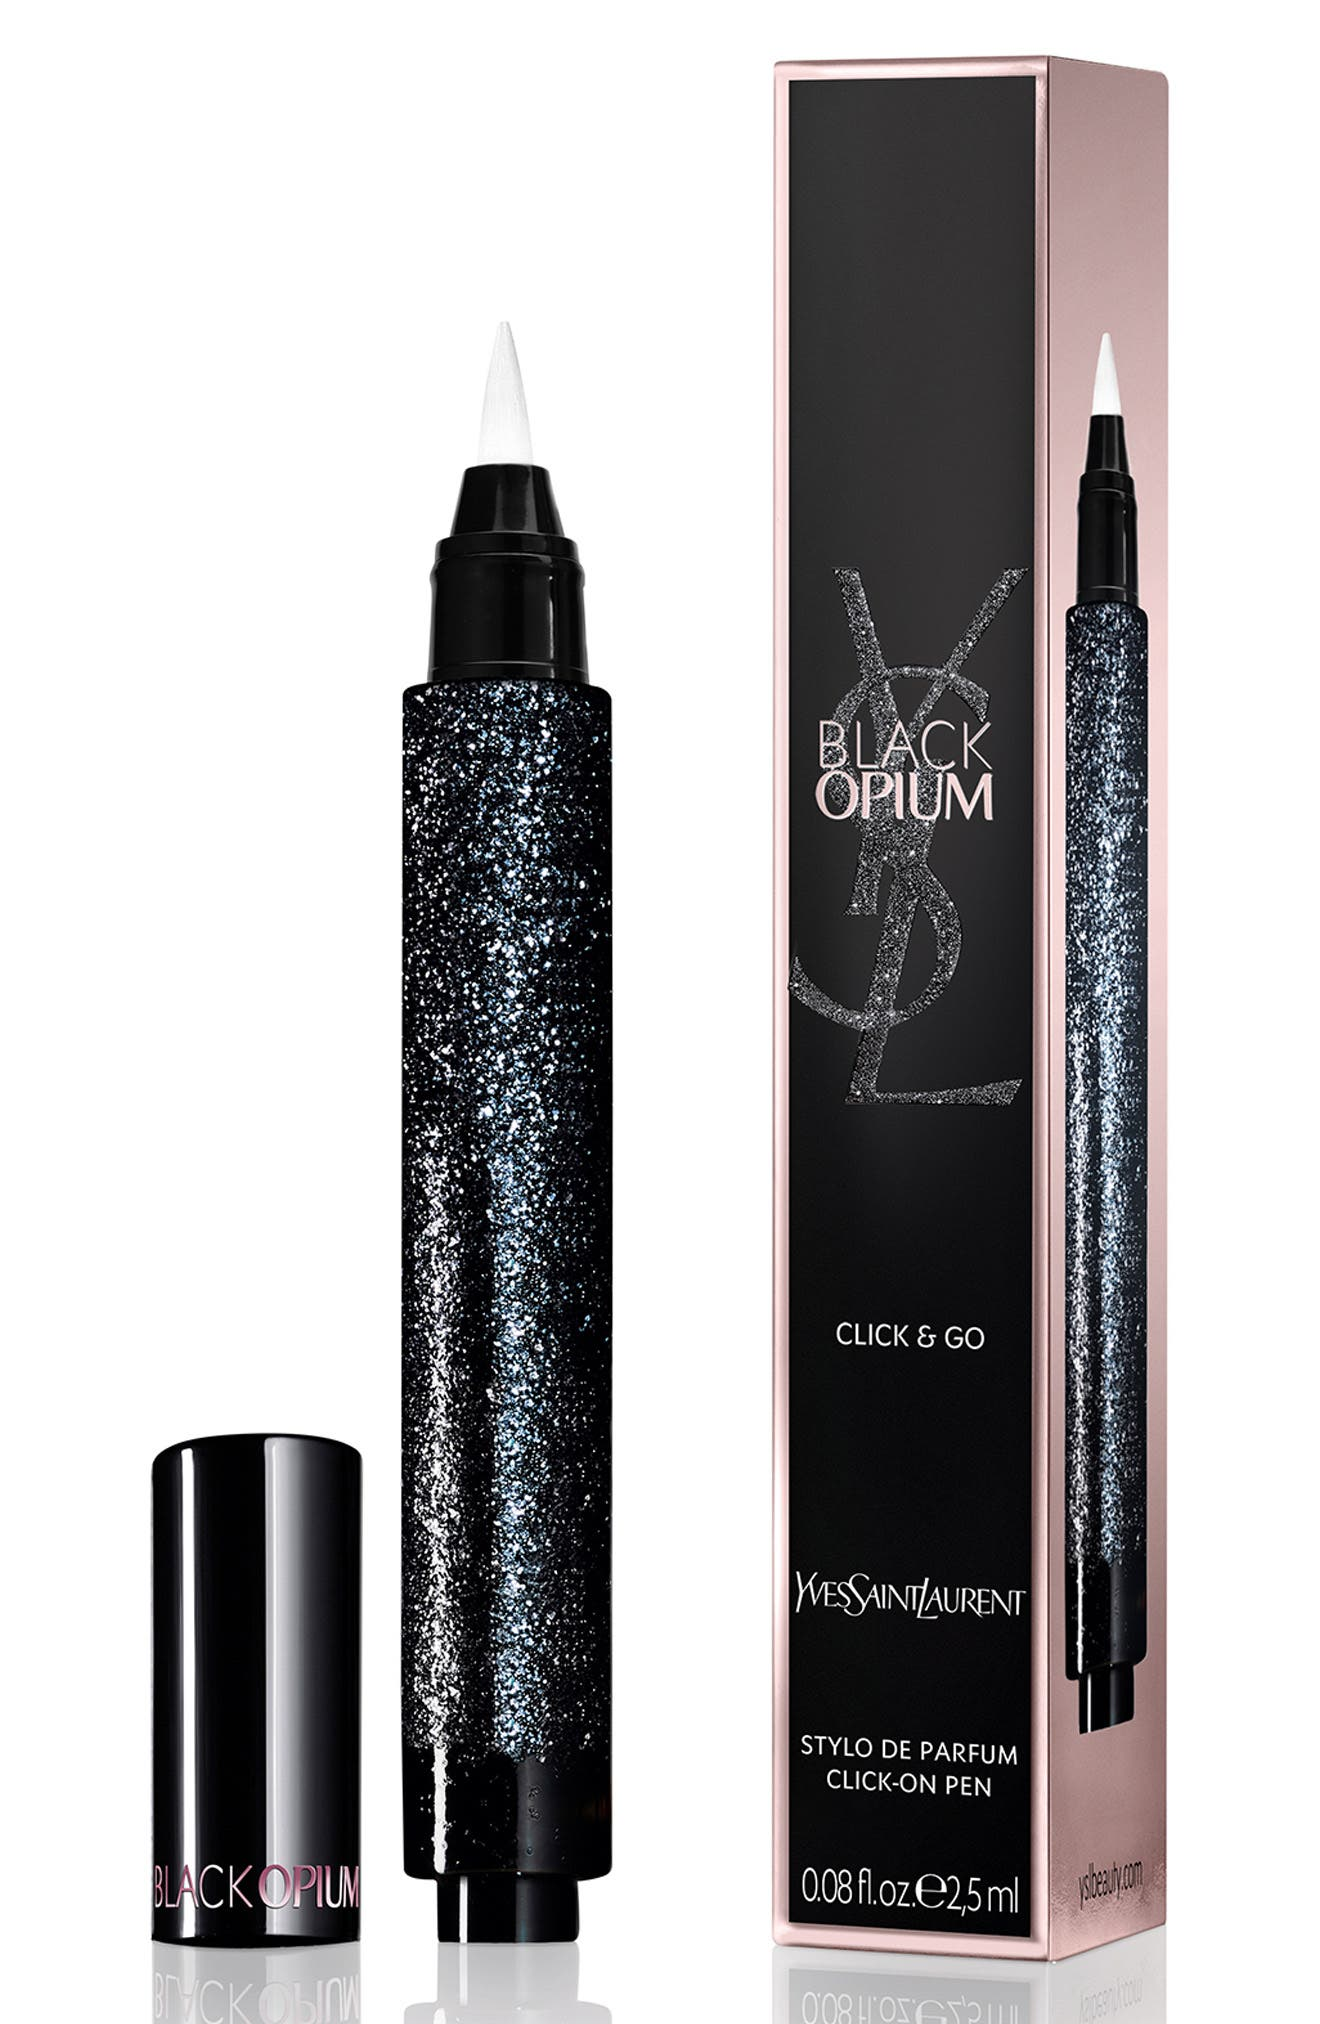 Black Opium Click & Go Perfume Gel Brush Pen,                             Main thumbnail 1, color,                             NO COLOR